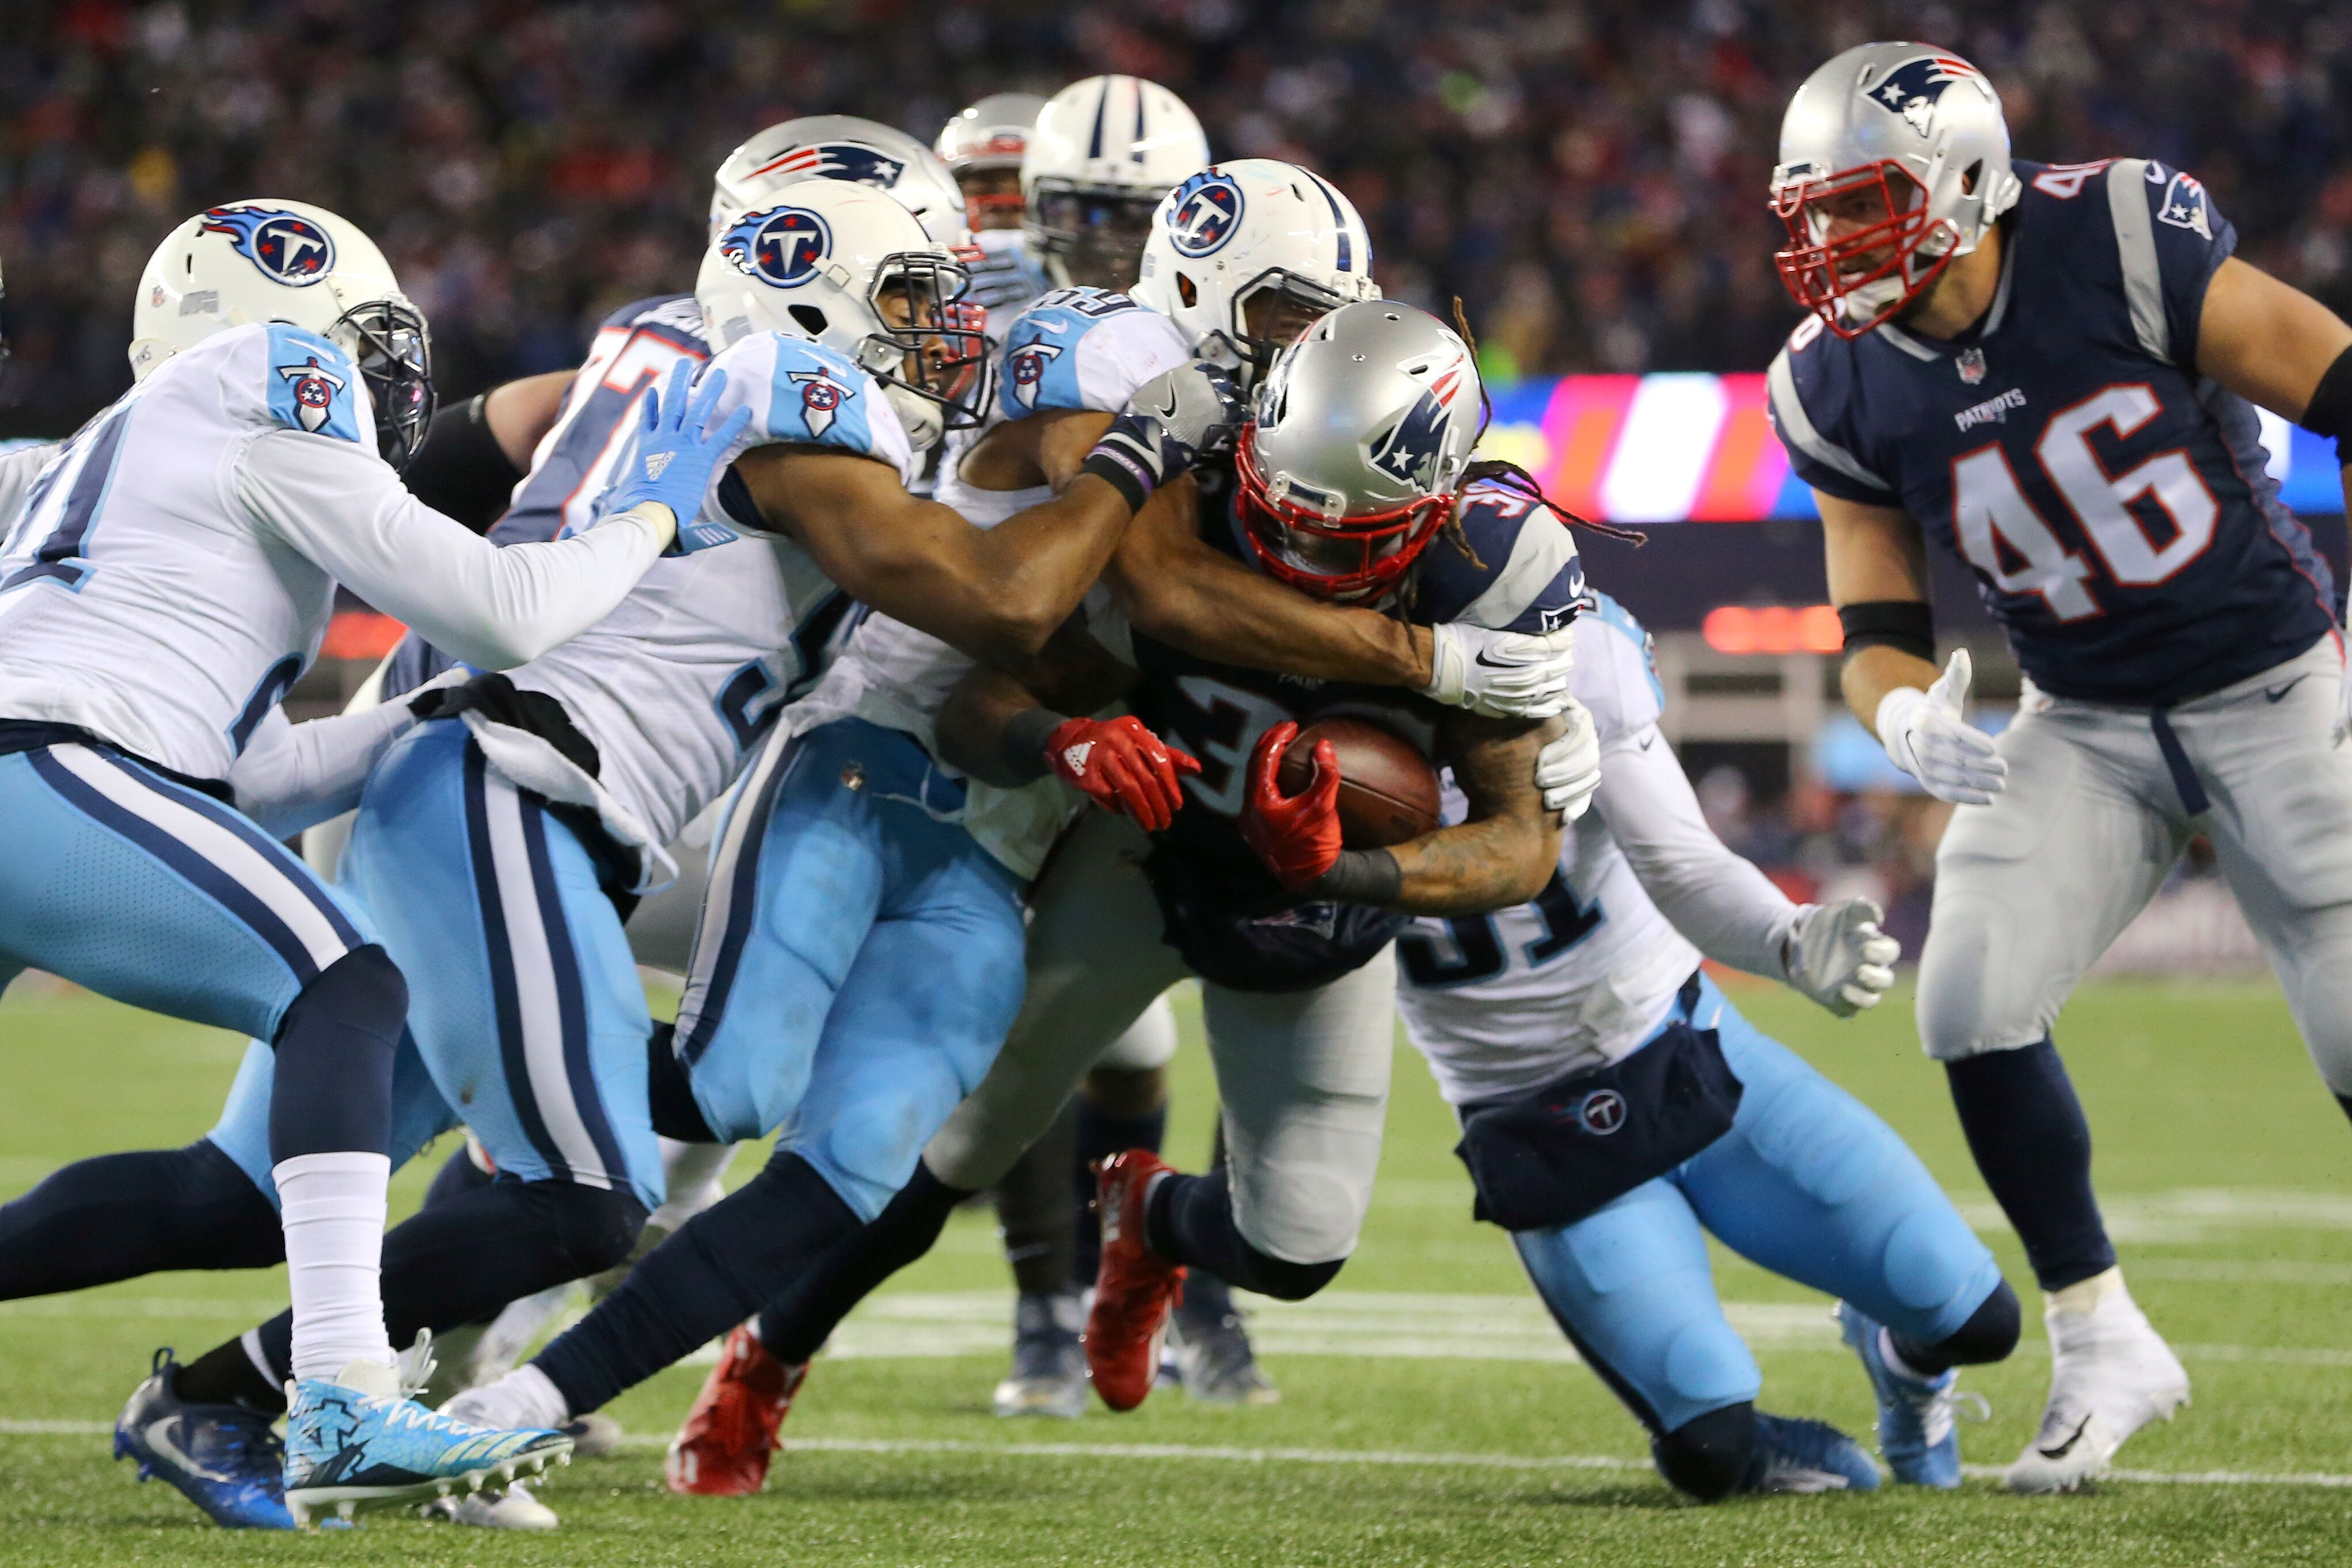 904663286-divisional-round-tennessee-titans-v-new-england-patriots.jpg